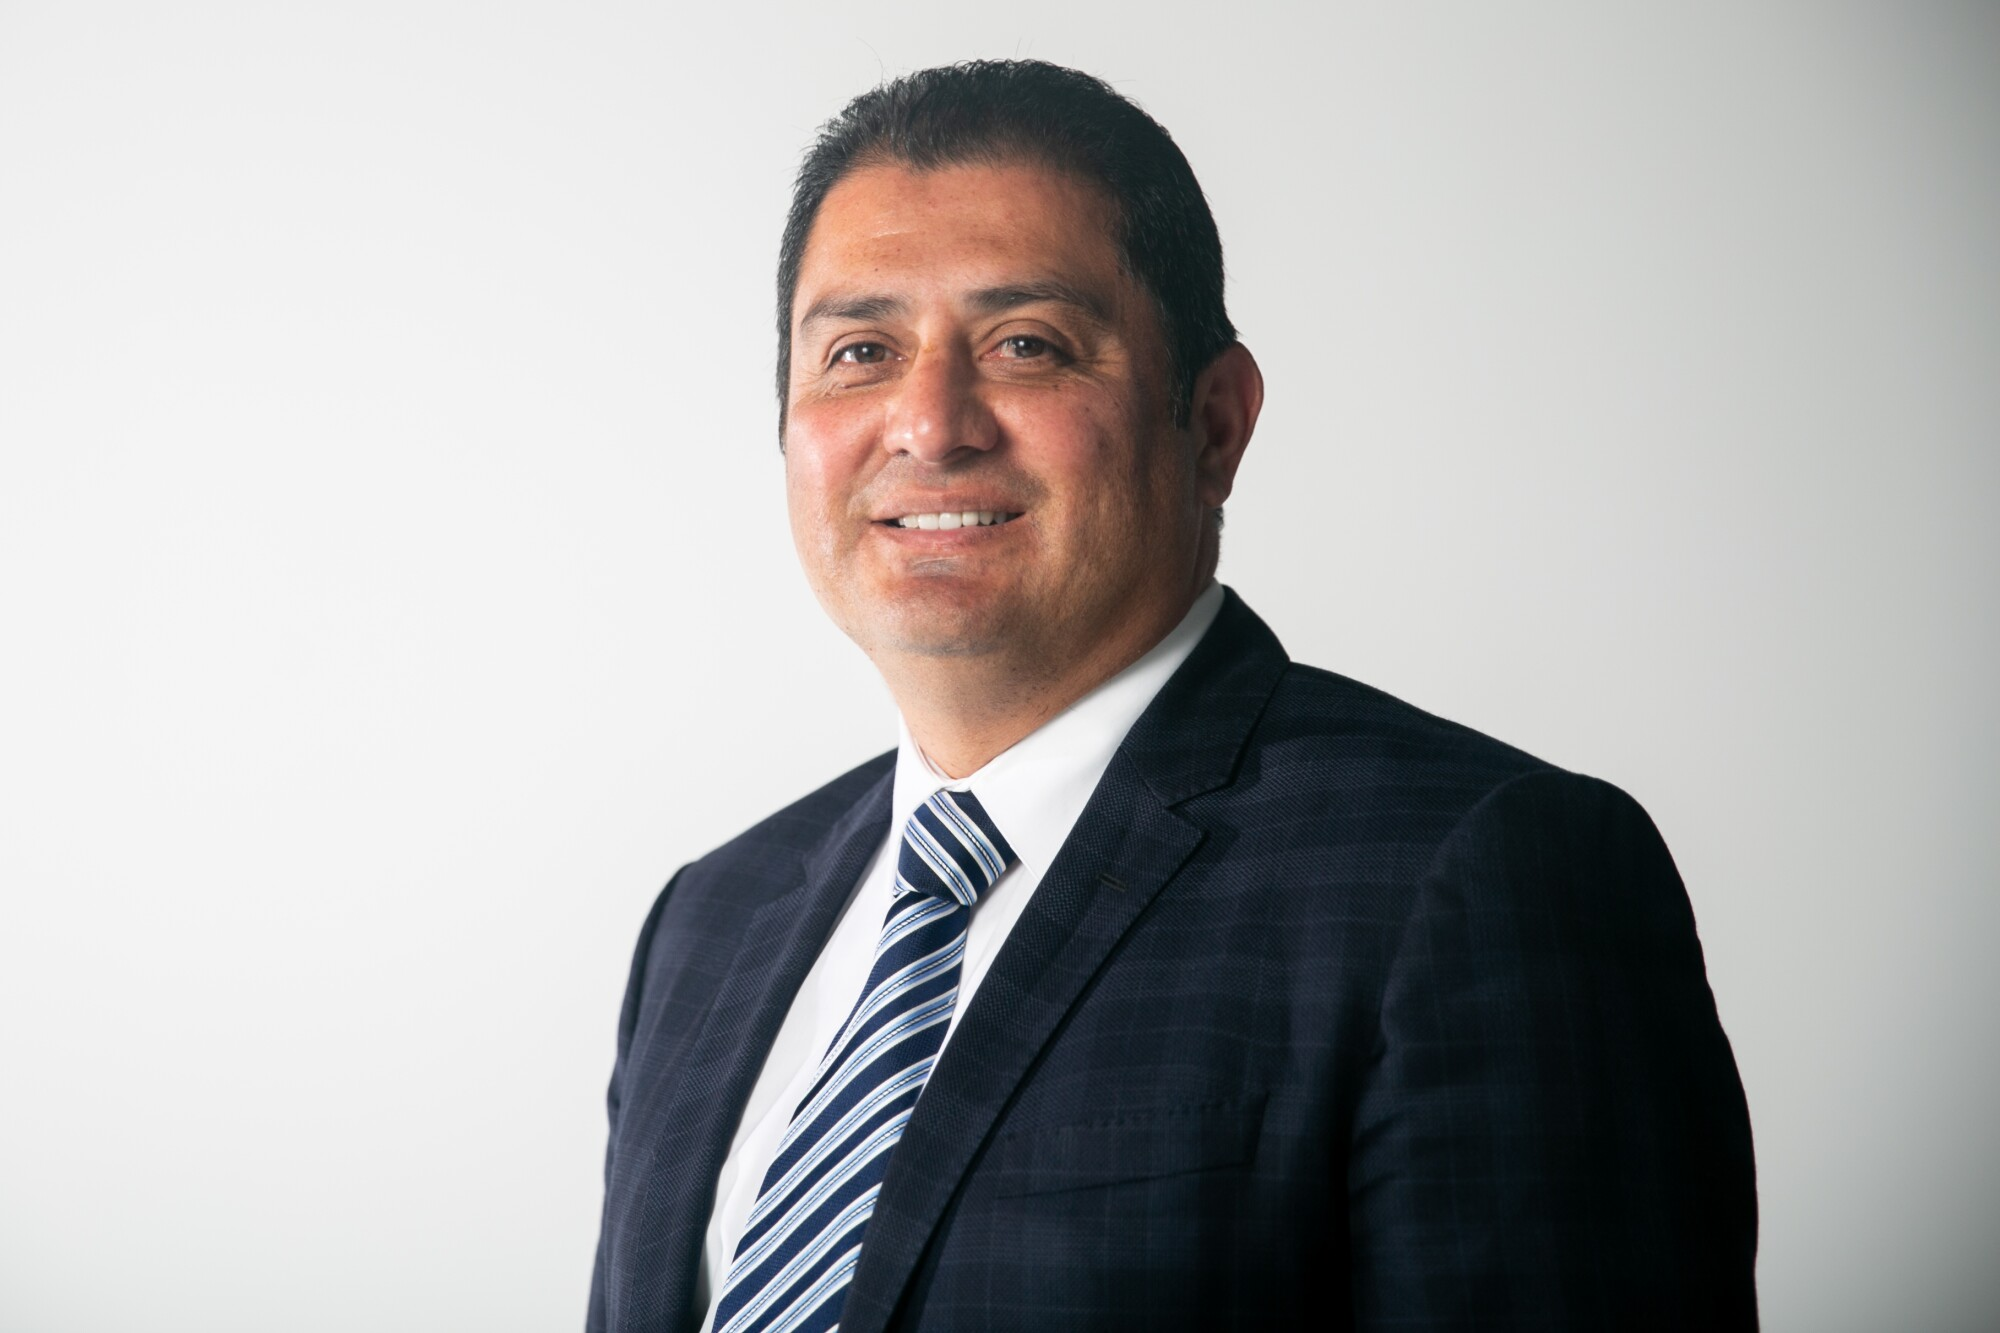 Ben Hueso, candidate for the San Diego County Board of Supervisors District 1